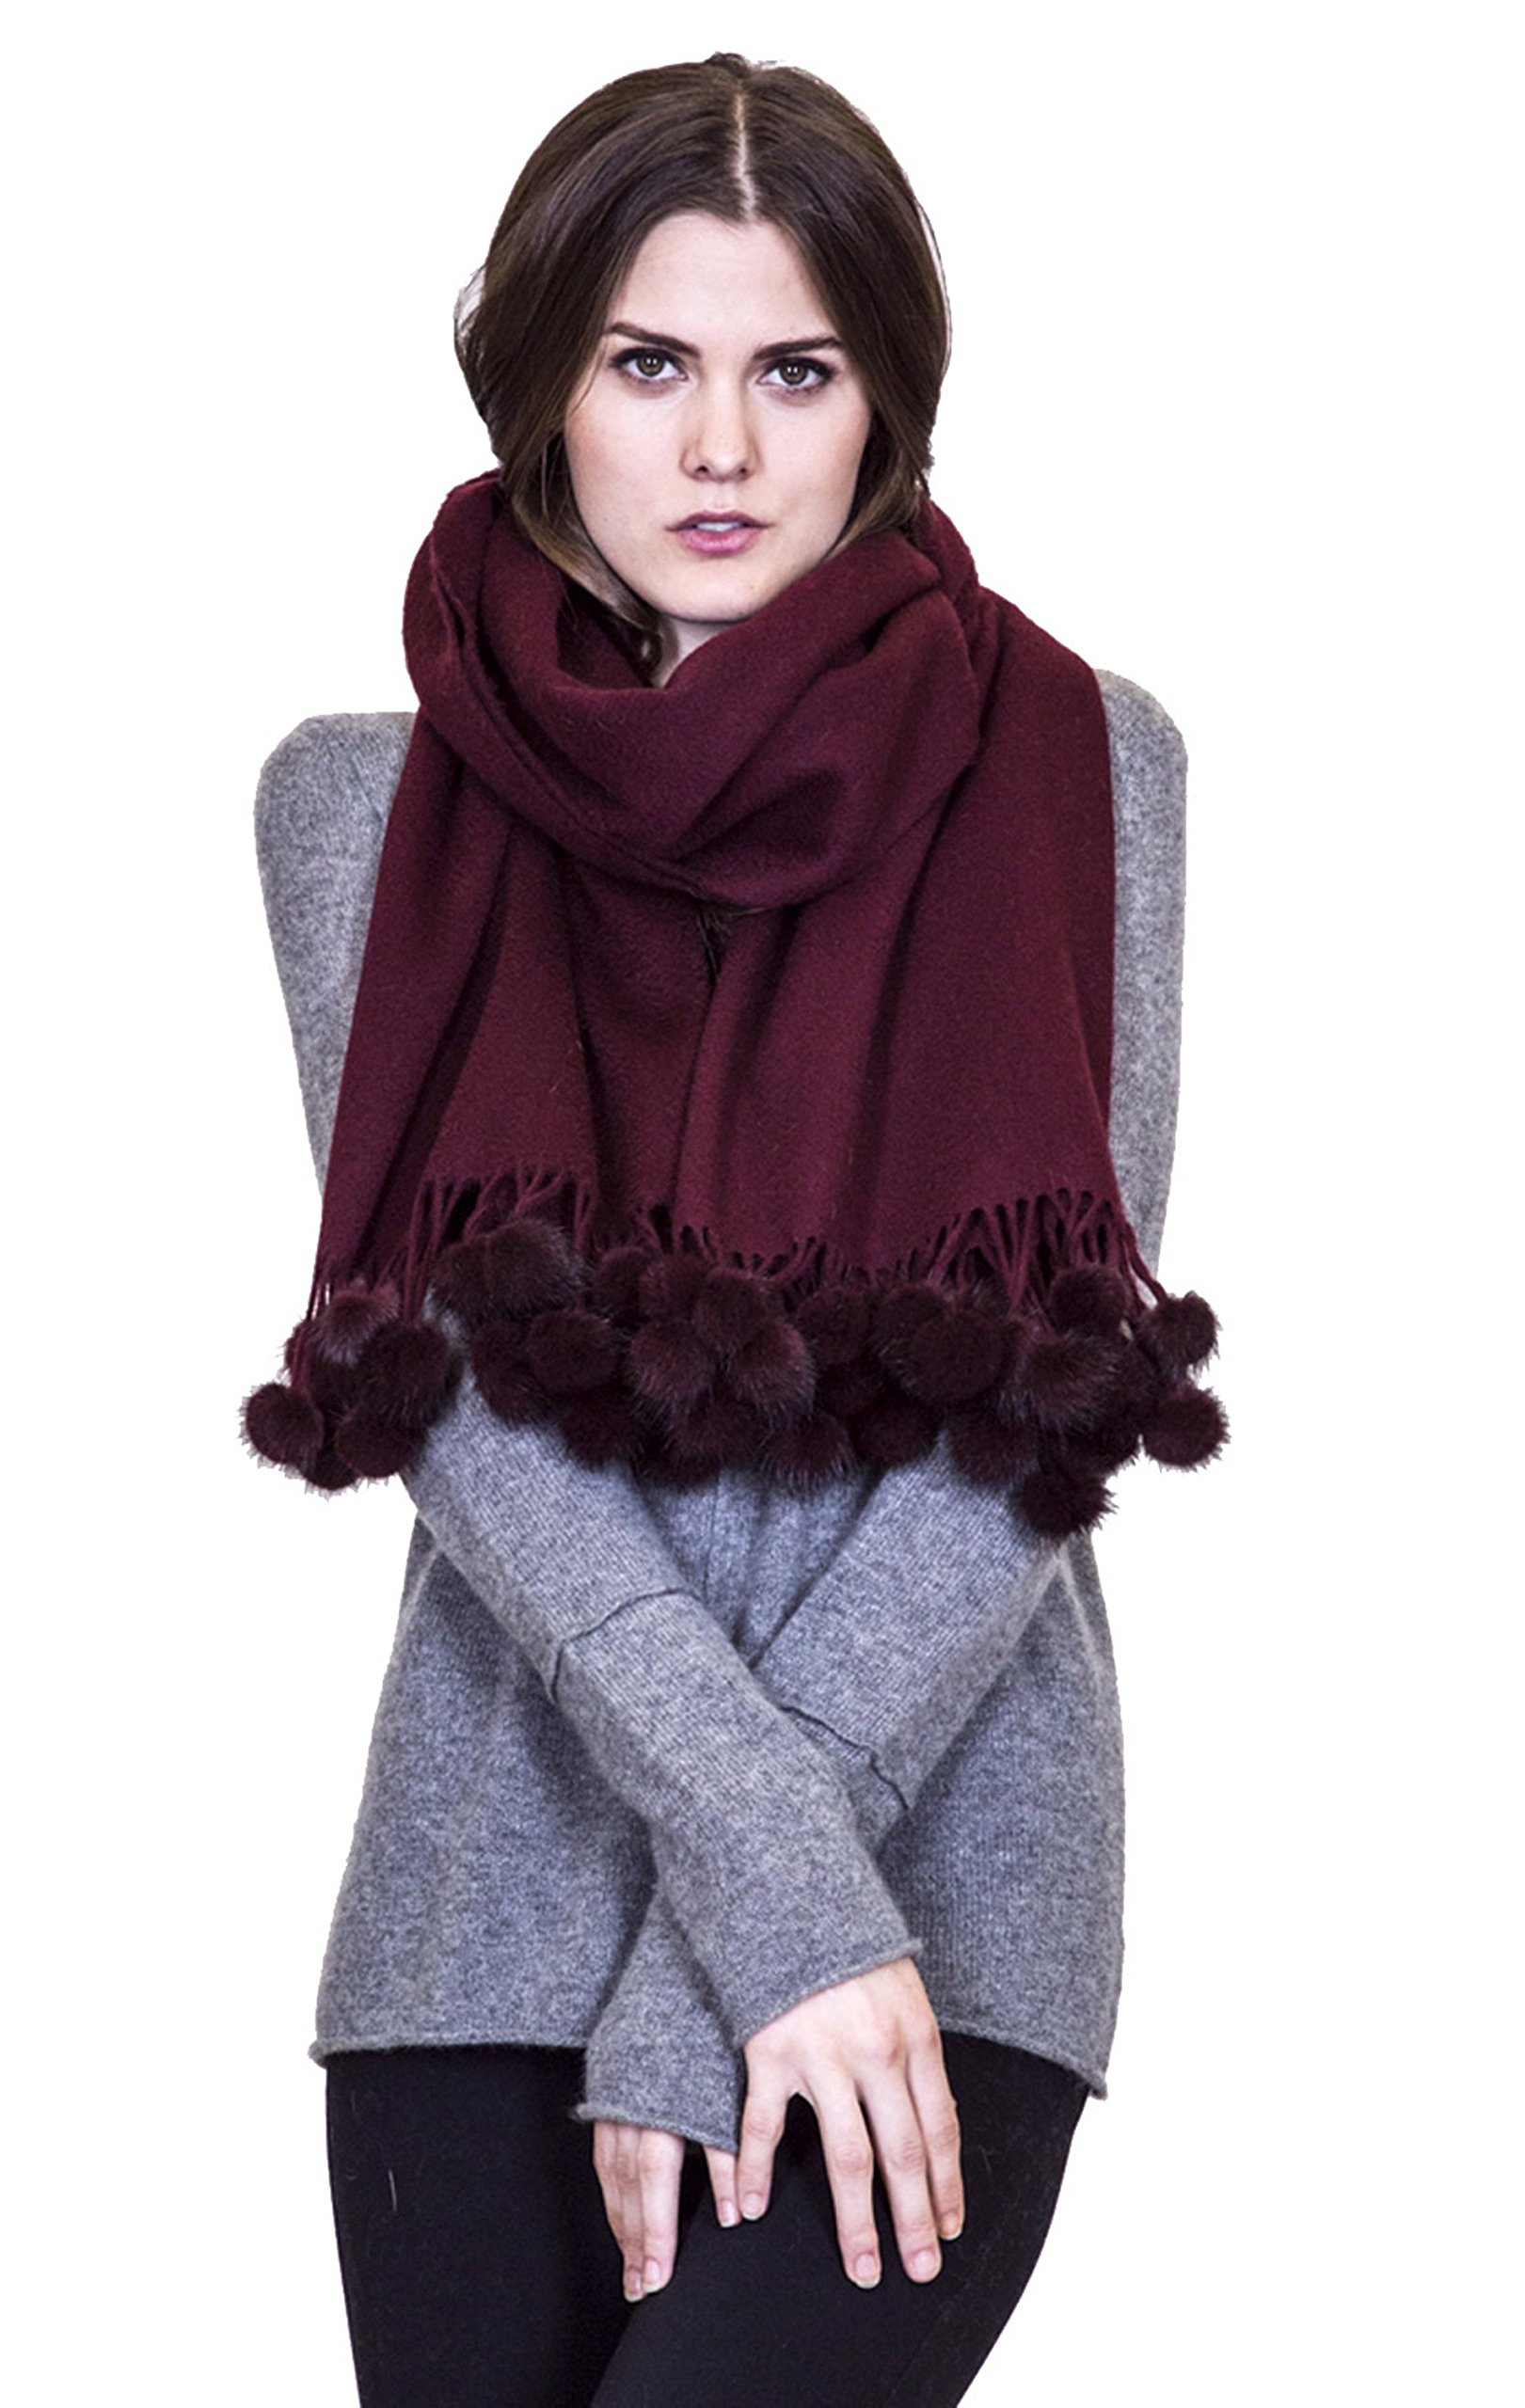 Cashmere scarf, scarves, shawl with Mink pom-pom balls - Cashmere Pashmina Group by Cashmere Pashmina Group